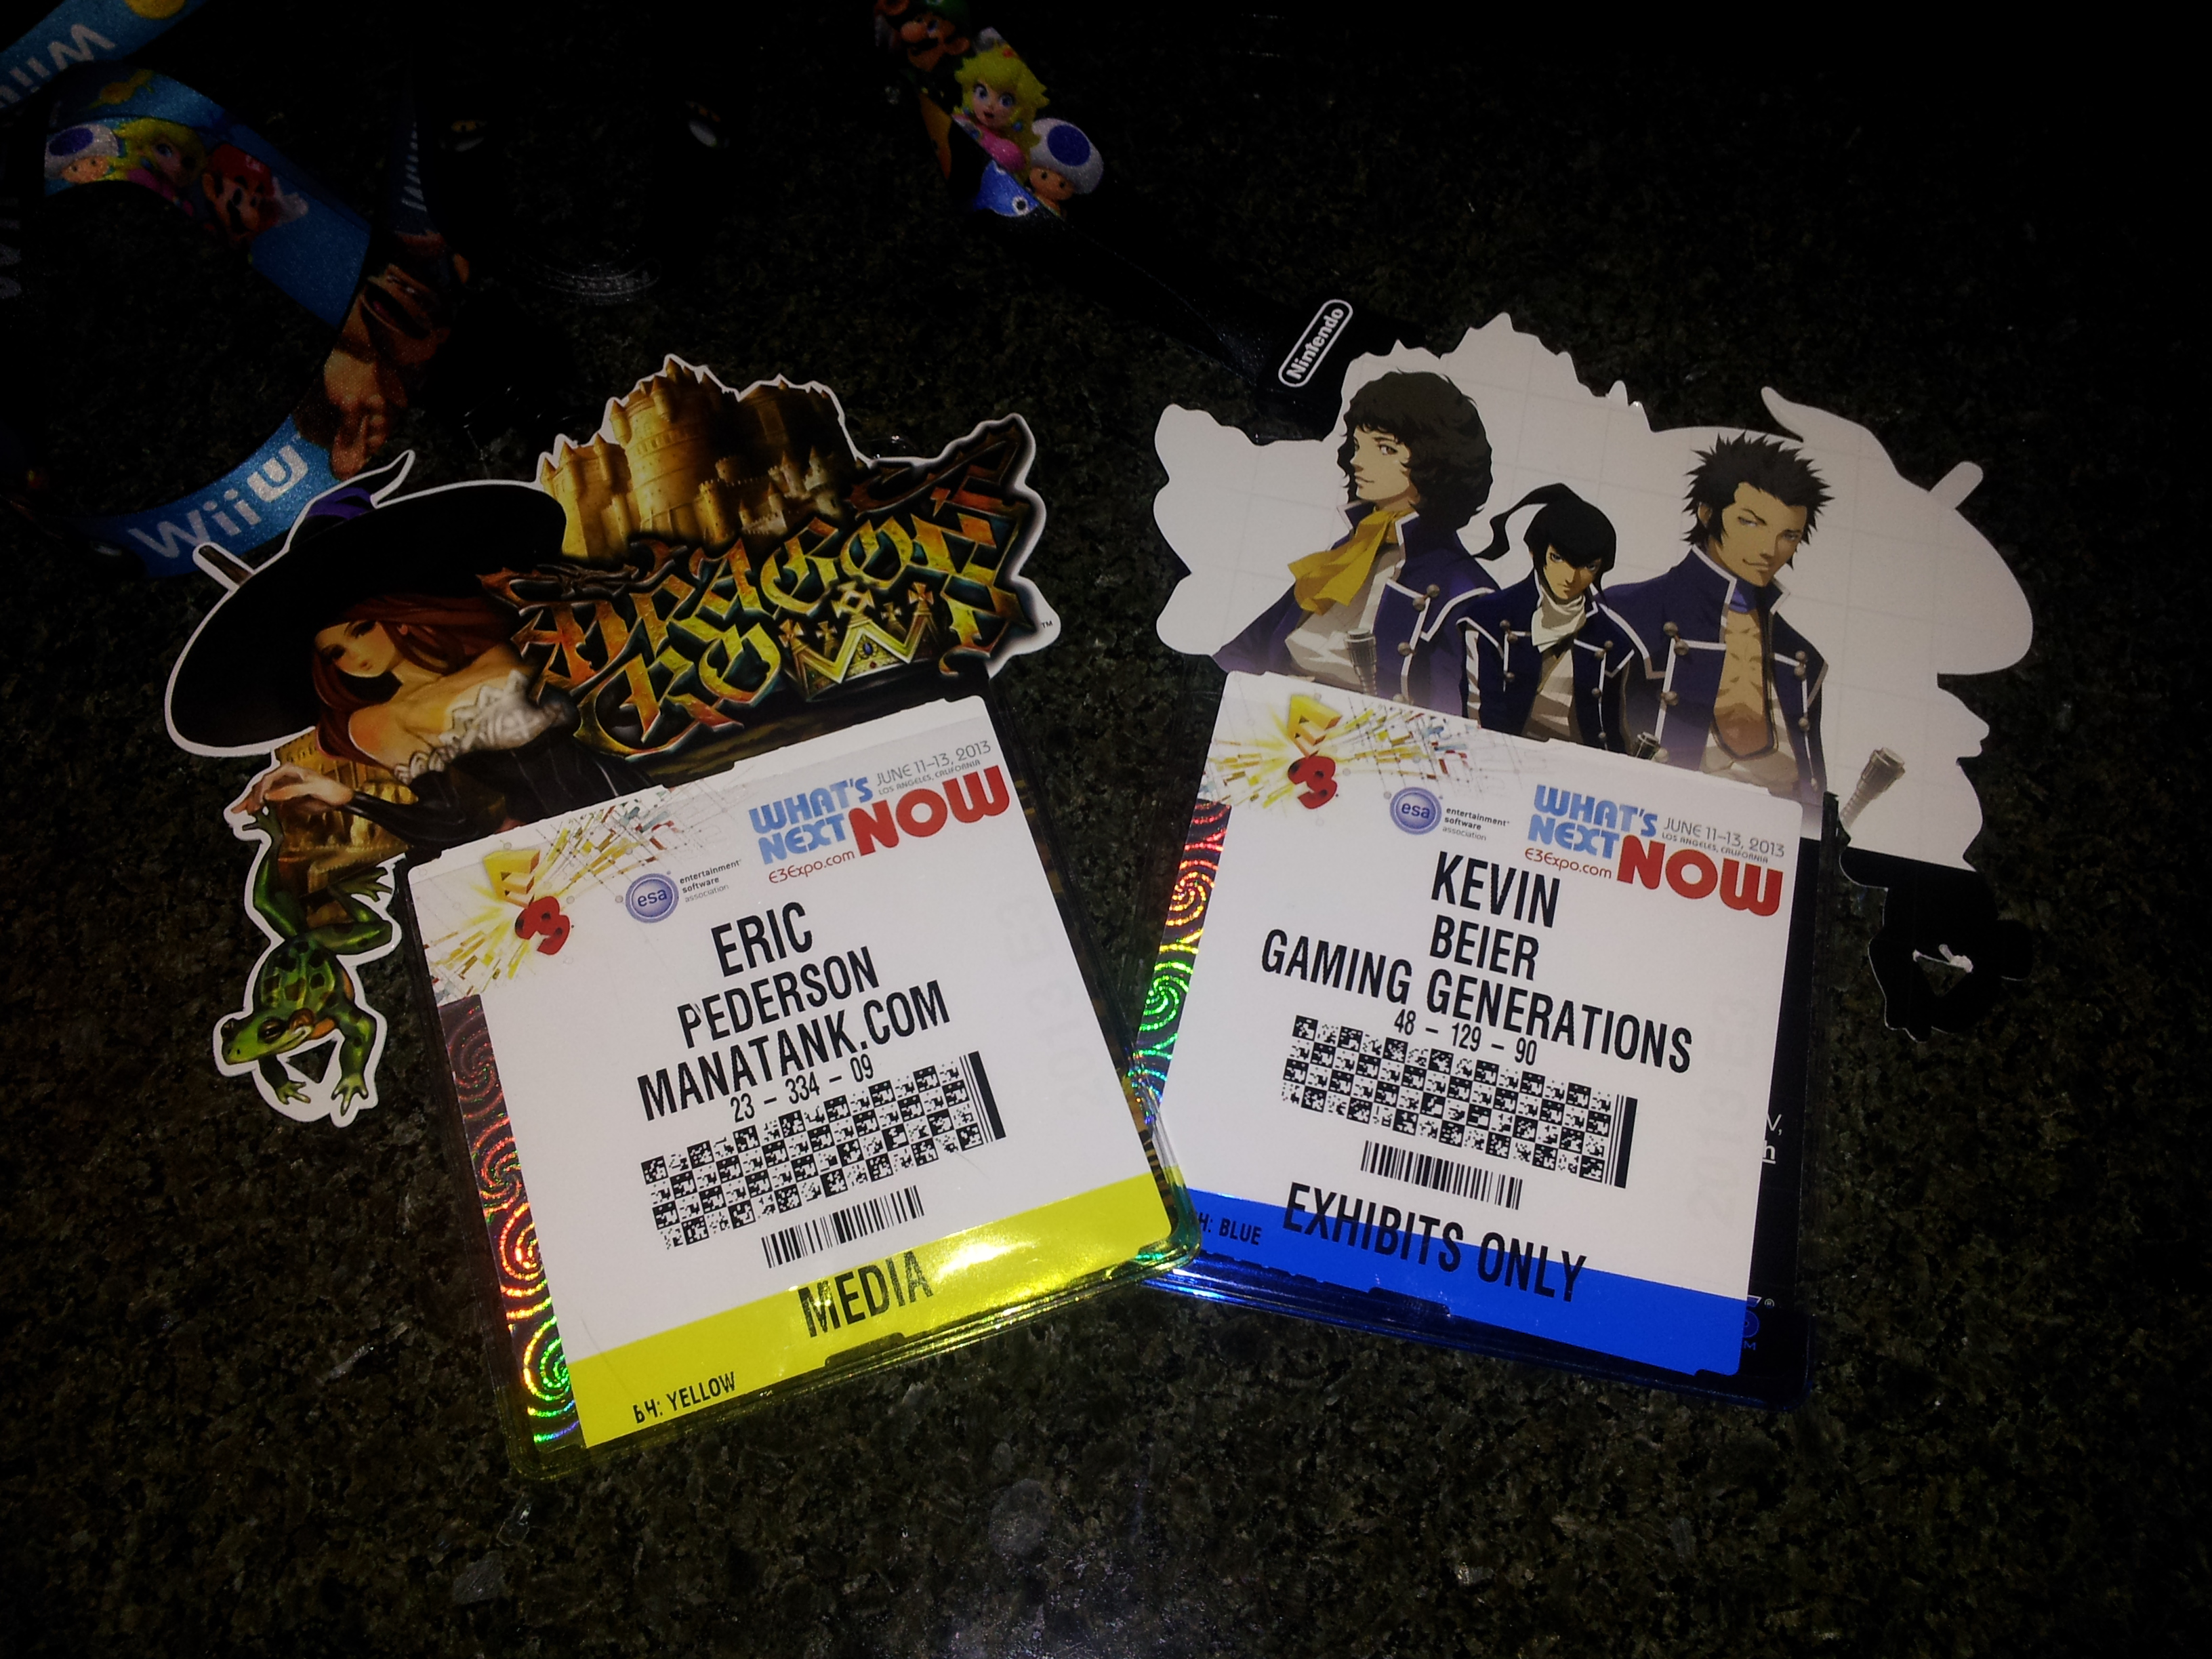 E3 2013: Check In Day